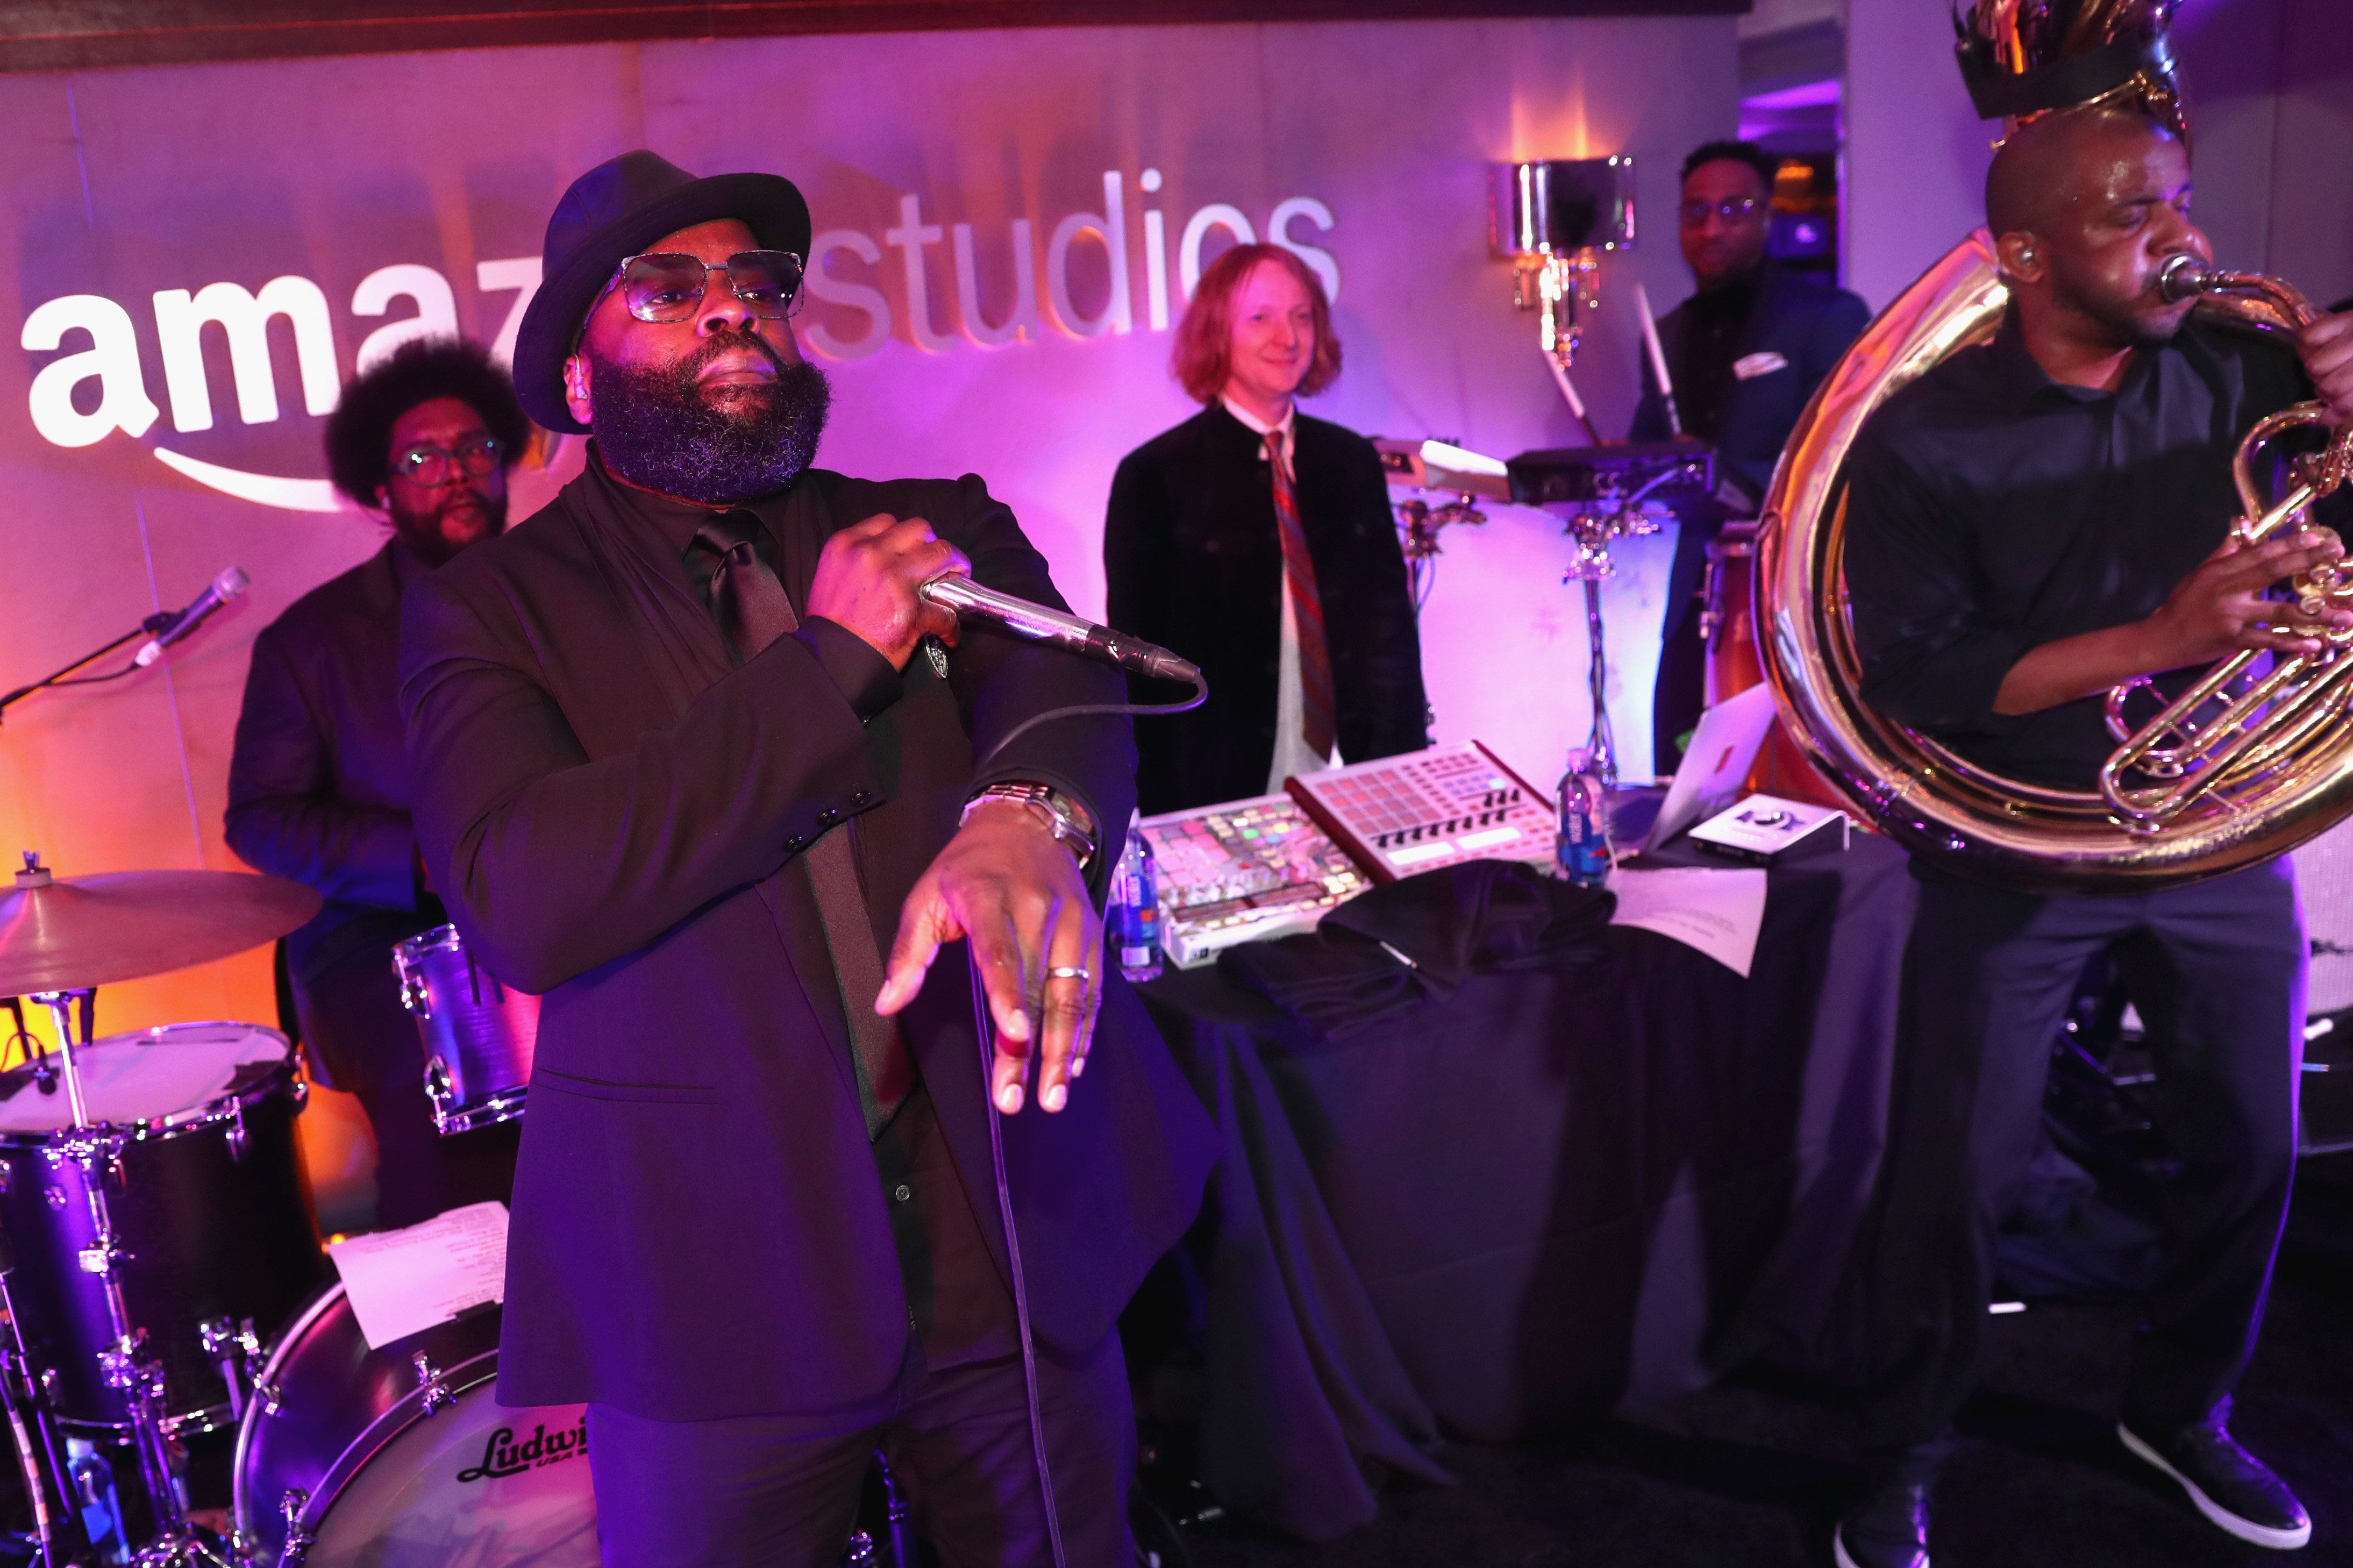 BEVERLY HILLS, CA - JANUARY 08:  Black Thought and Questlove of the Roots performs at the Amazon Studios Golden Globes Celebration at The Beverly Hilton Hotel on January 8, 2017 in Beverly Hills, California.  (Photo by Todd Williamson/Getty Images for Amazon)